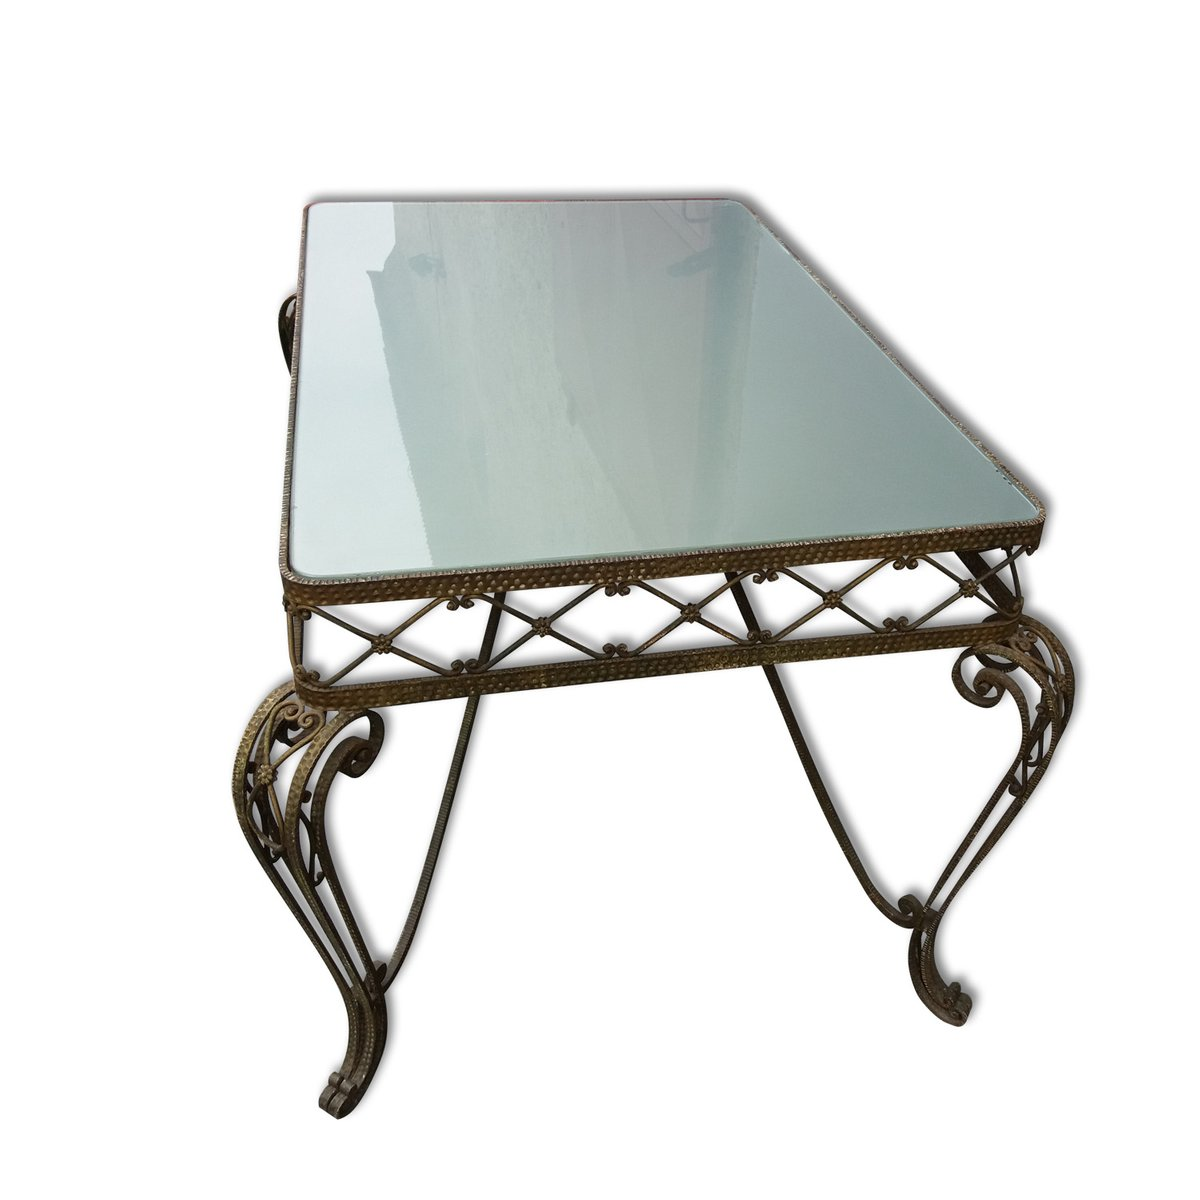 50s retro console table - photo #14